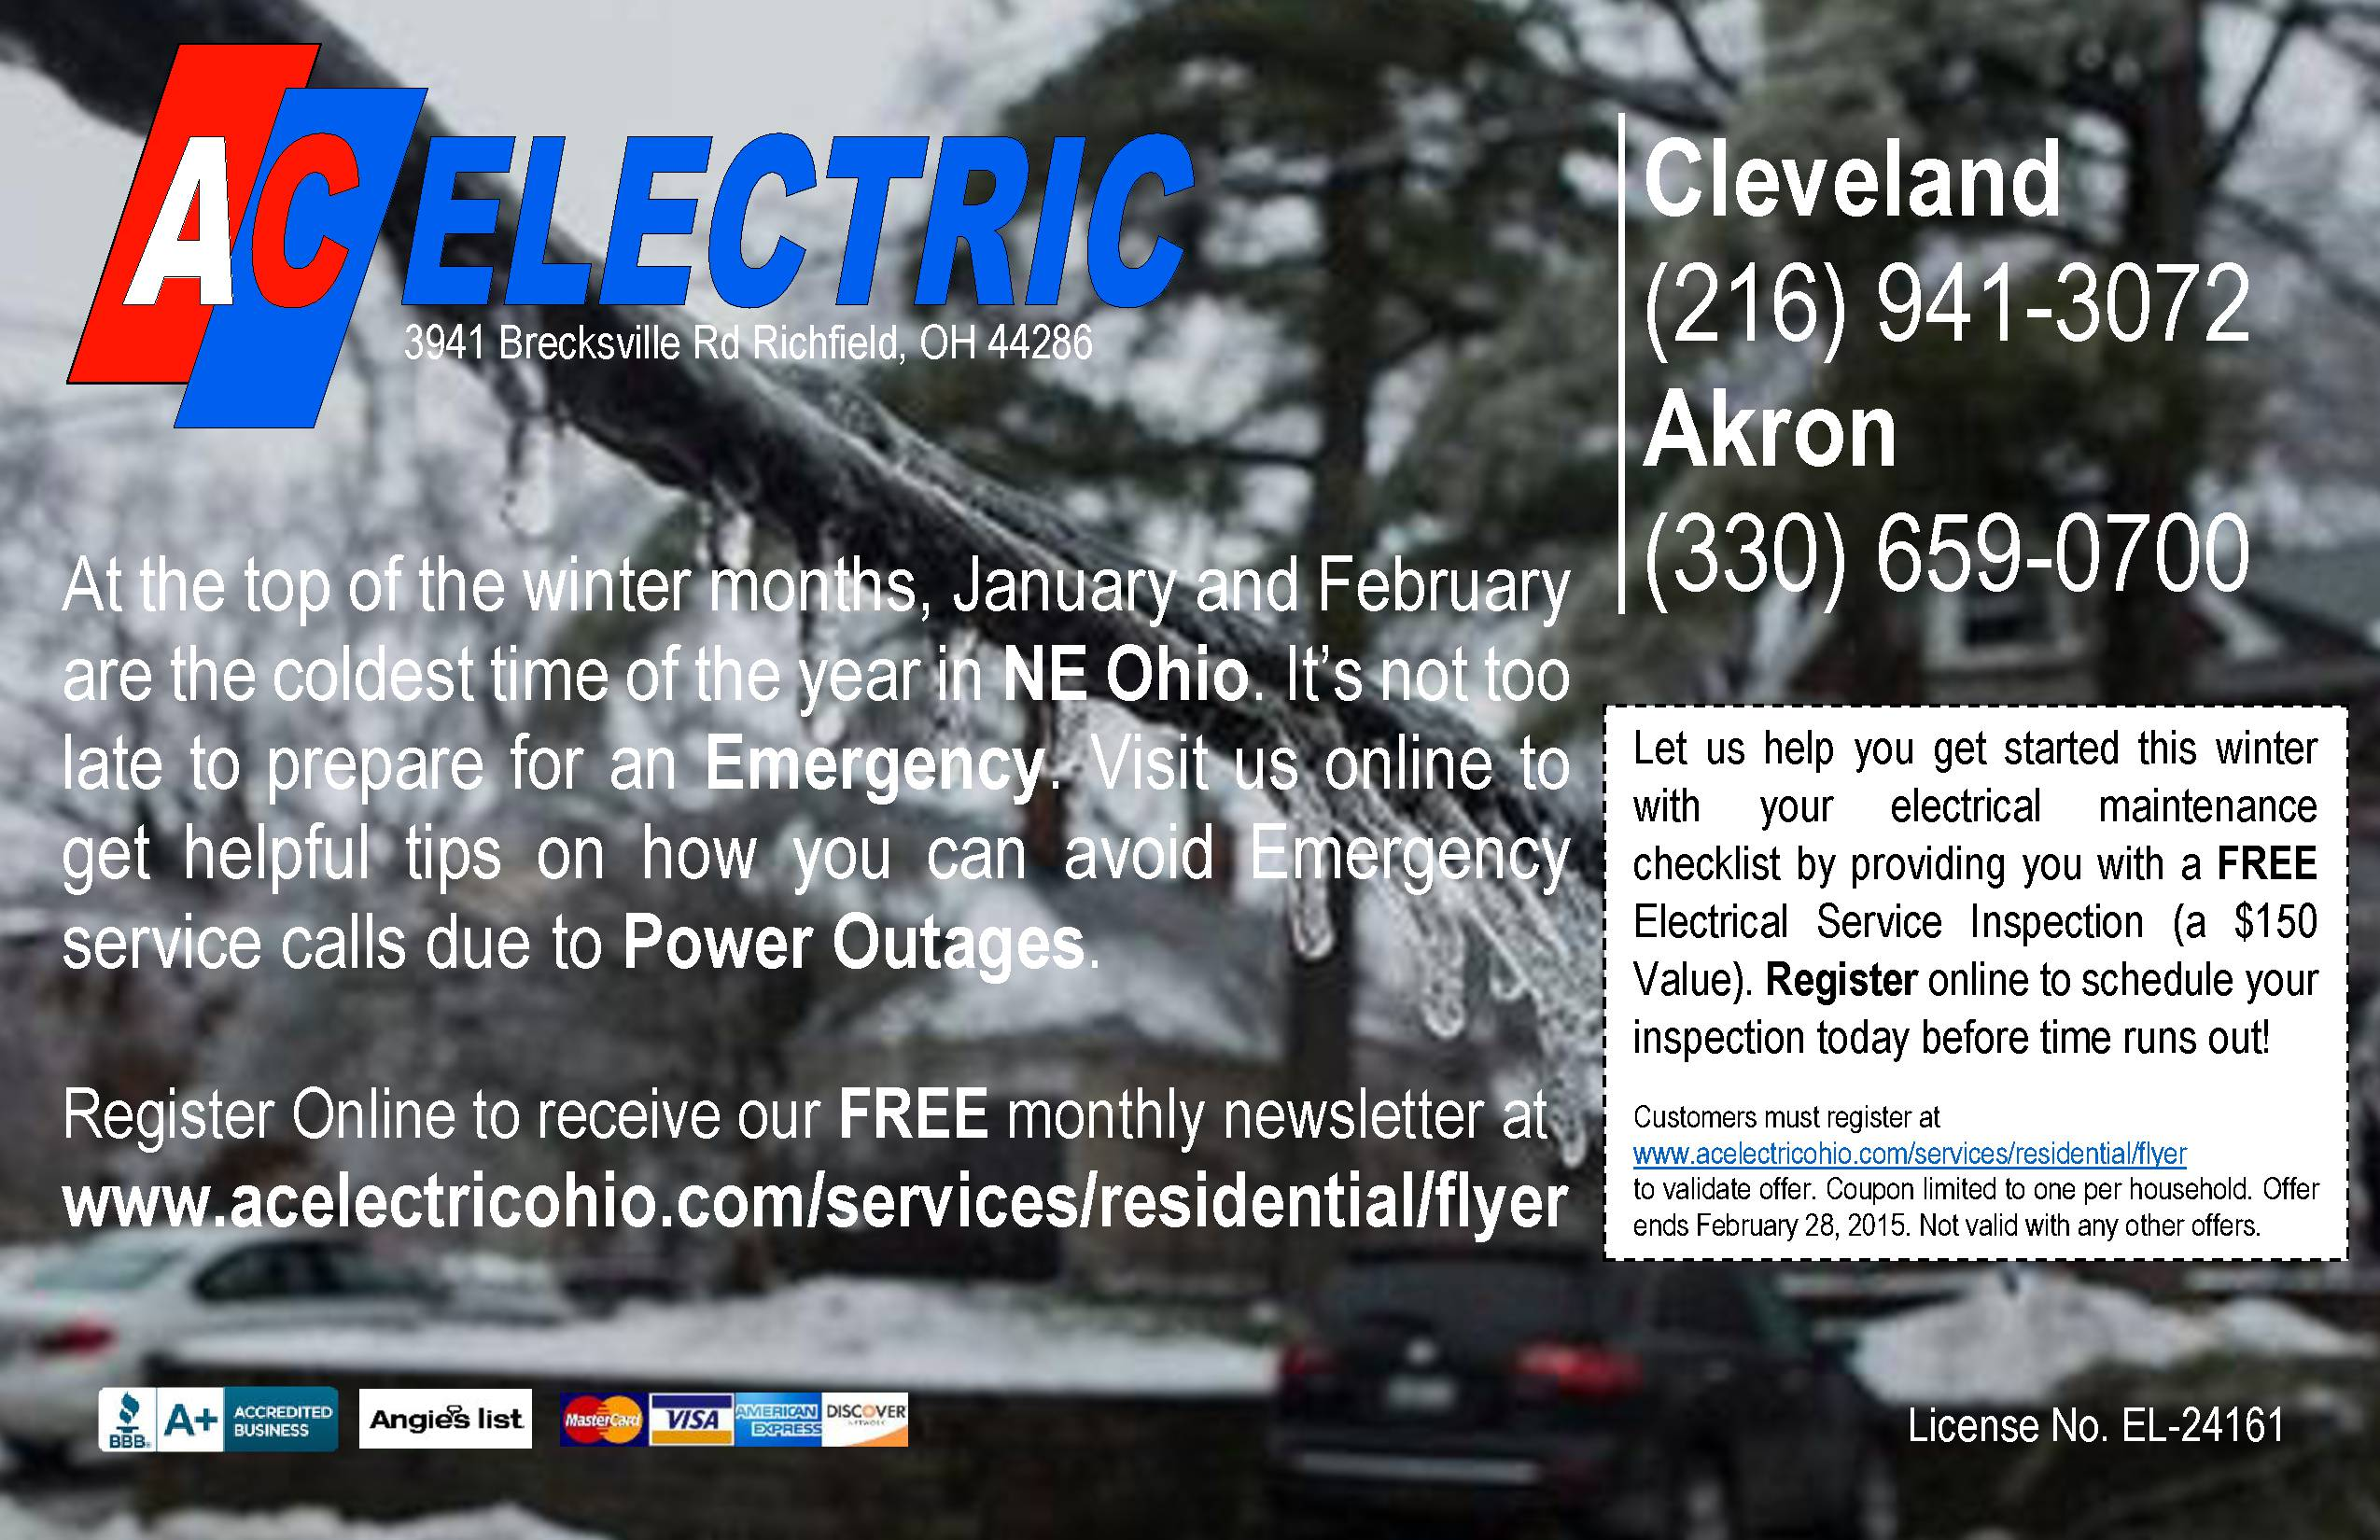 January 2015-Emergency Electrical Service